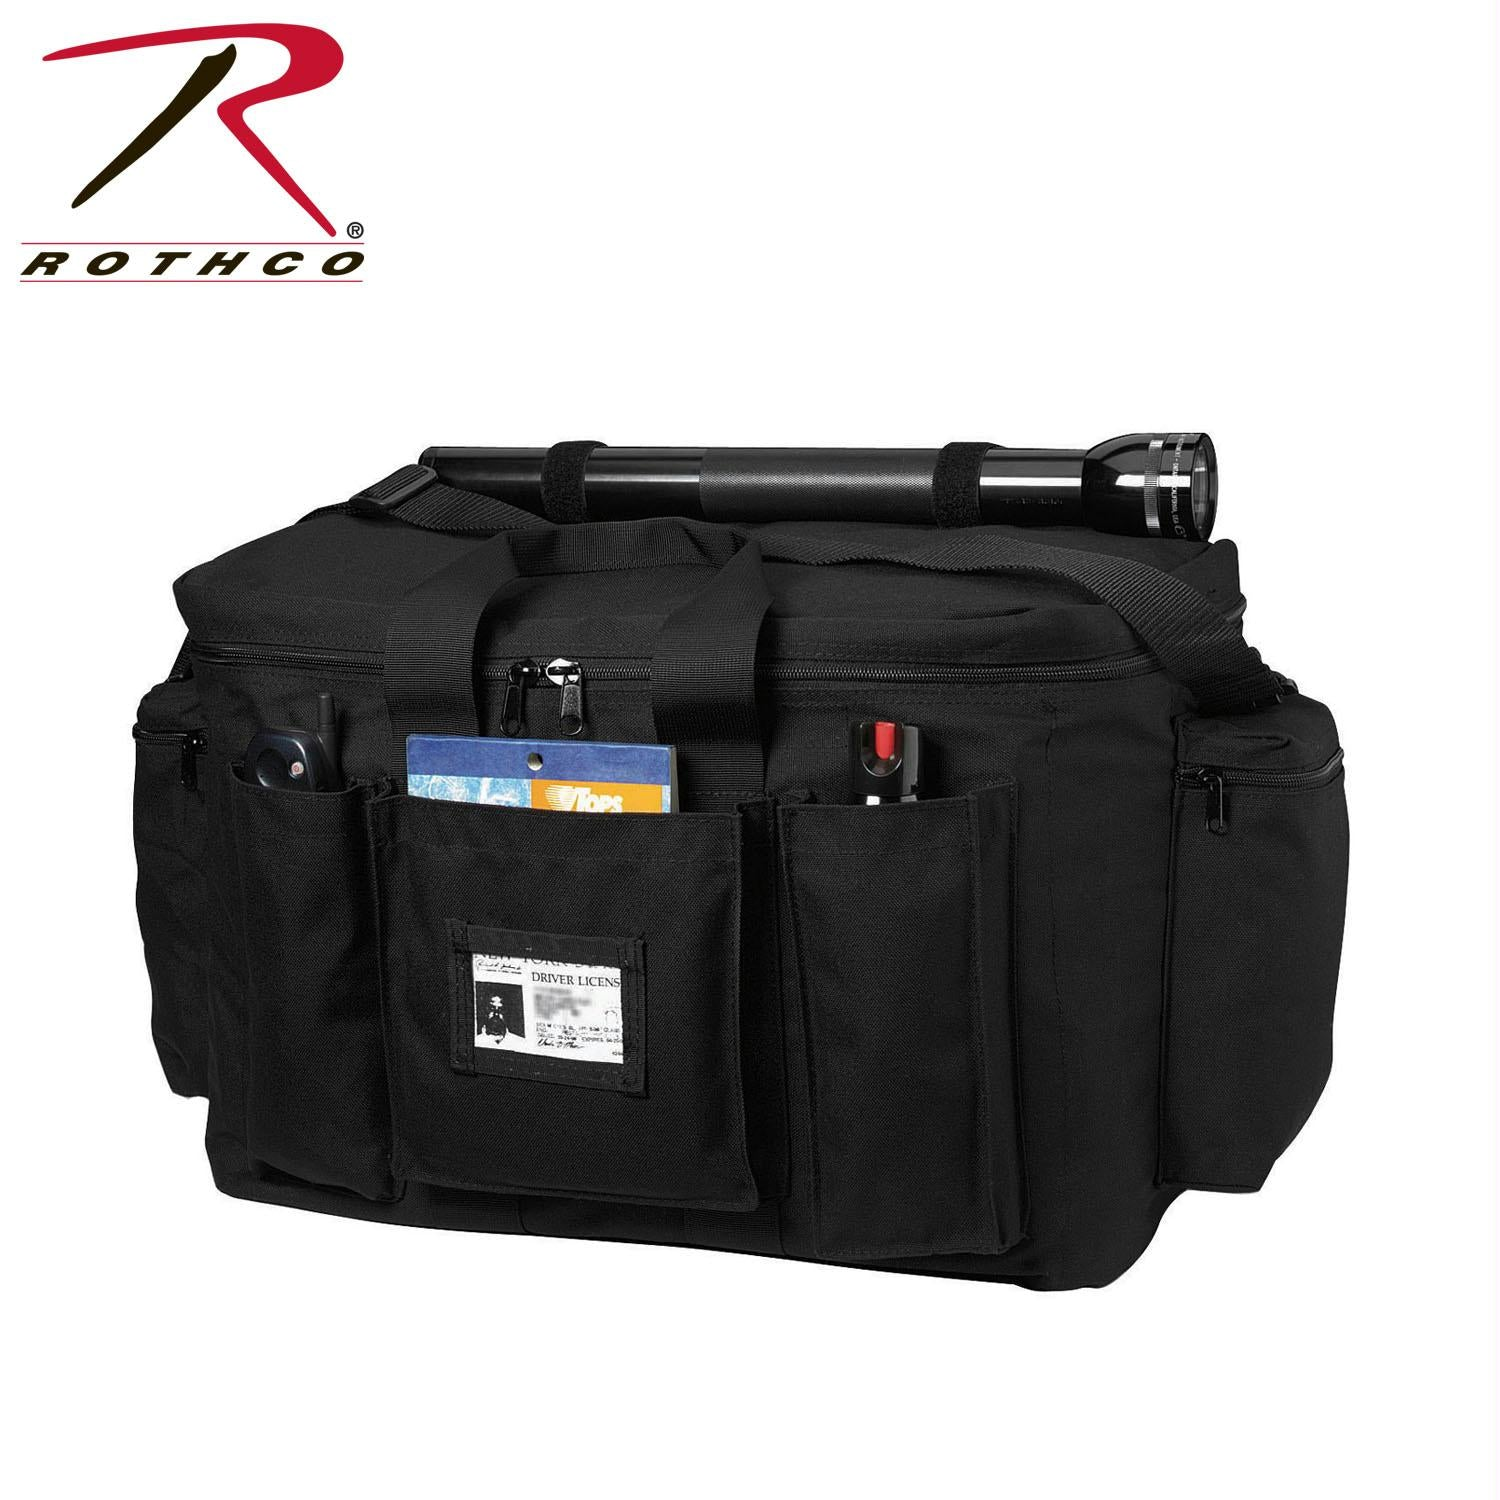 Rothco Black Police Equipment Bag - Black / One Size